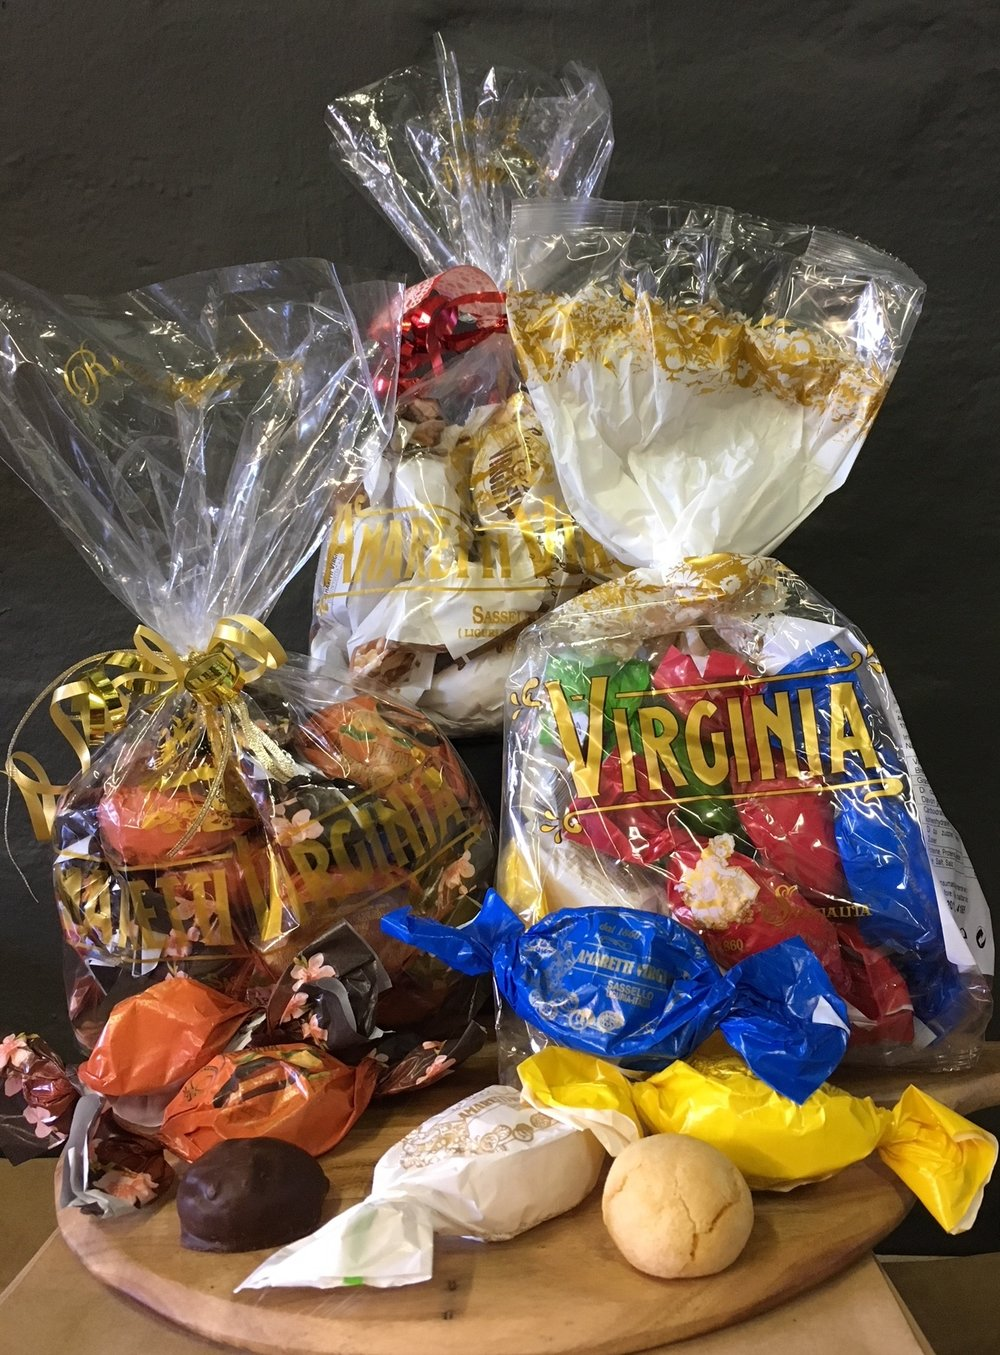 Assorted gift bags in the following varieties    - soft amaretti    - crunchy amaretti     - chocolate-coated chocolate biscuits with apricot filling     - biscuits with chocolate cream and hazelnut cream filling